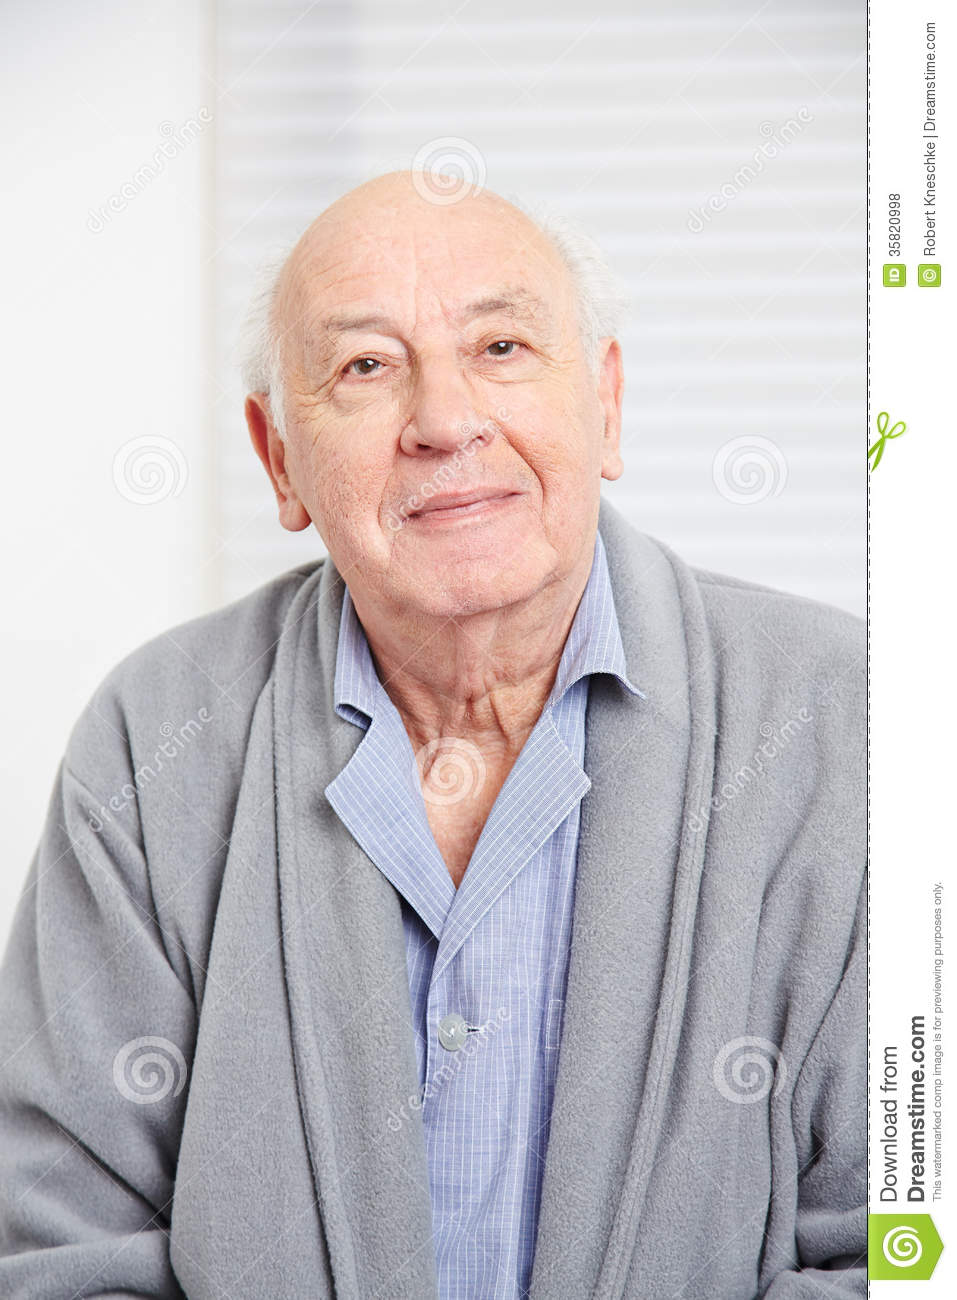 Face of an smiling old man in a retirement home Old Man Face Smiling